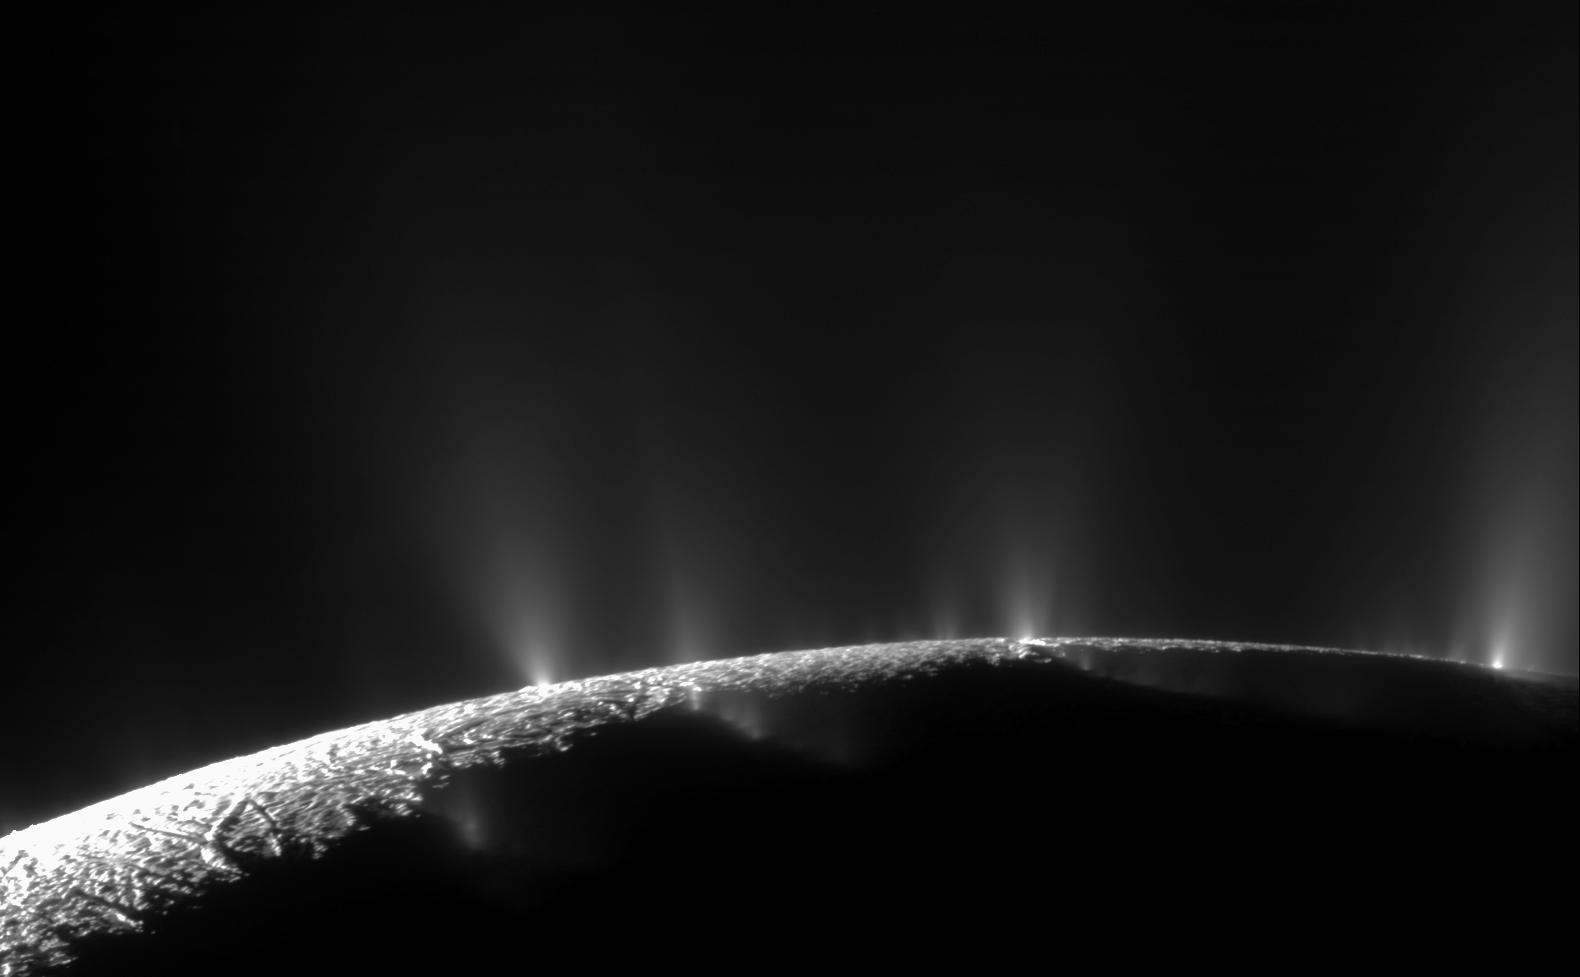 A mosaic was created from two high-resolution images that were captured by the narrow-angle camera when NASA's Cassini spacecraft flew past Enceladus